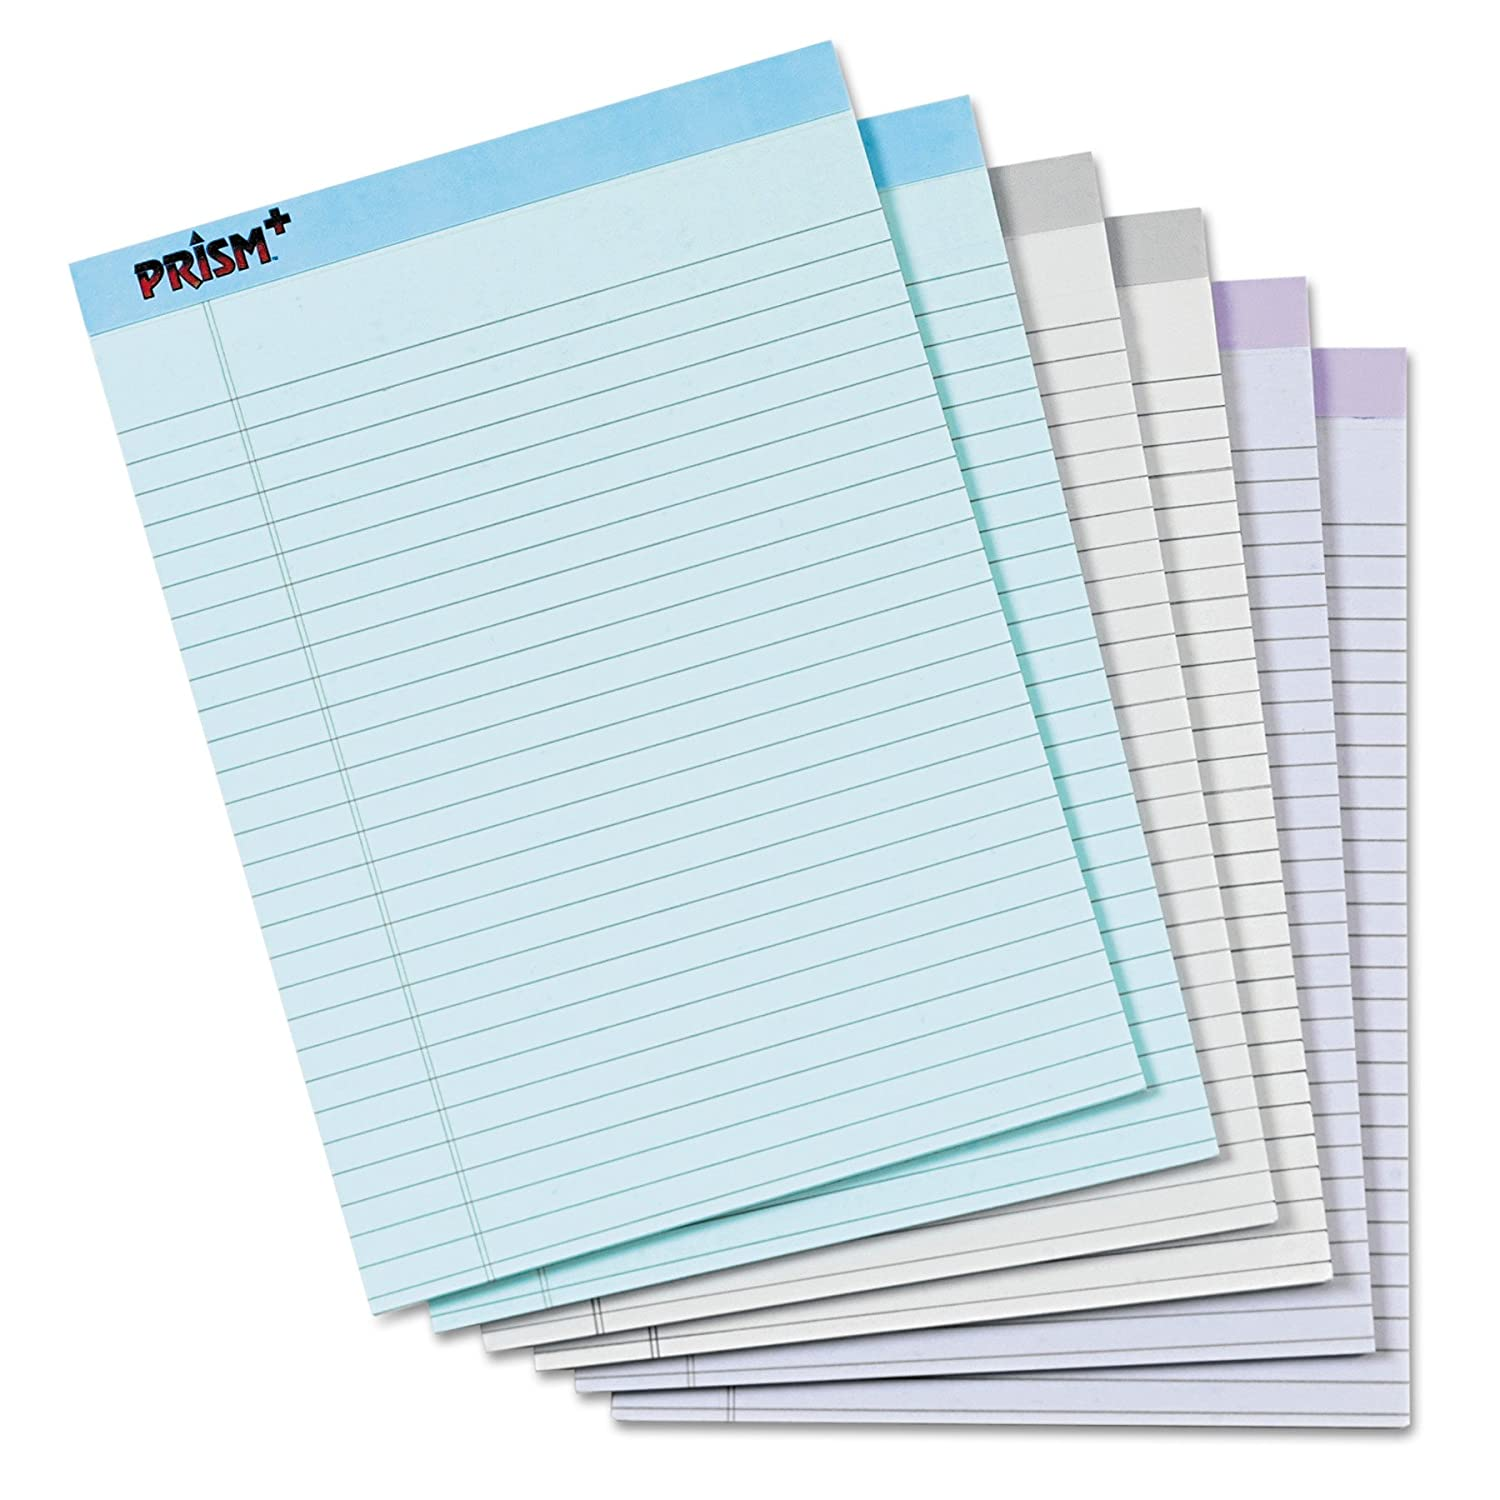 "TOPS Prism+ Writing Pads, 8-1/2"" x 11-3/4"", Assorted Colors 2 Each: Gray, Orchid, Blue, Legal Rule, 50 Sheets, Perforated Pages, 6 Pack (63116)"